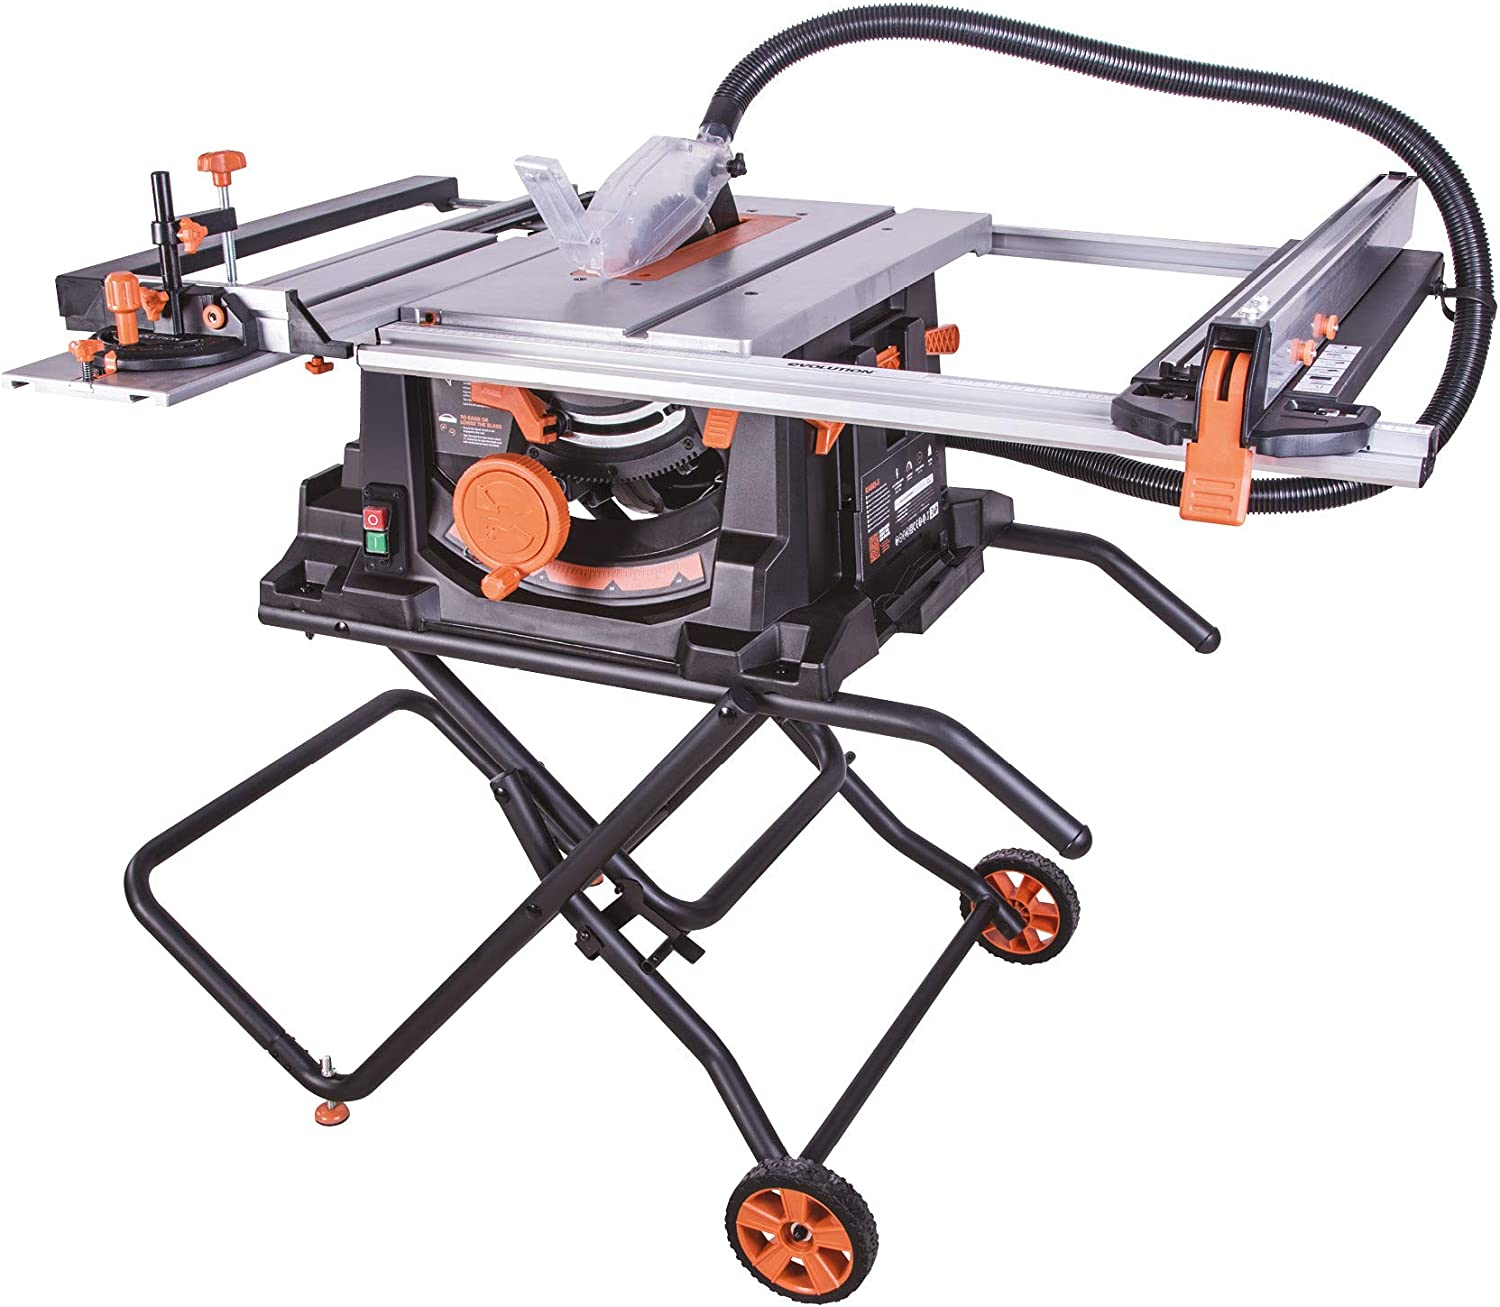 5. Evolution RAGE5S TCT Multi-Purpose Table Saw